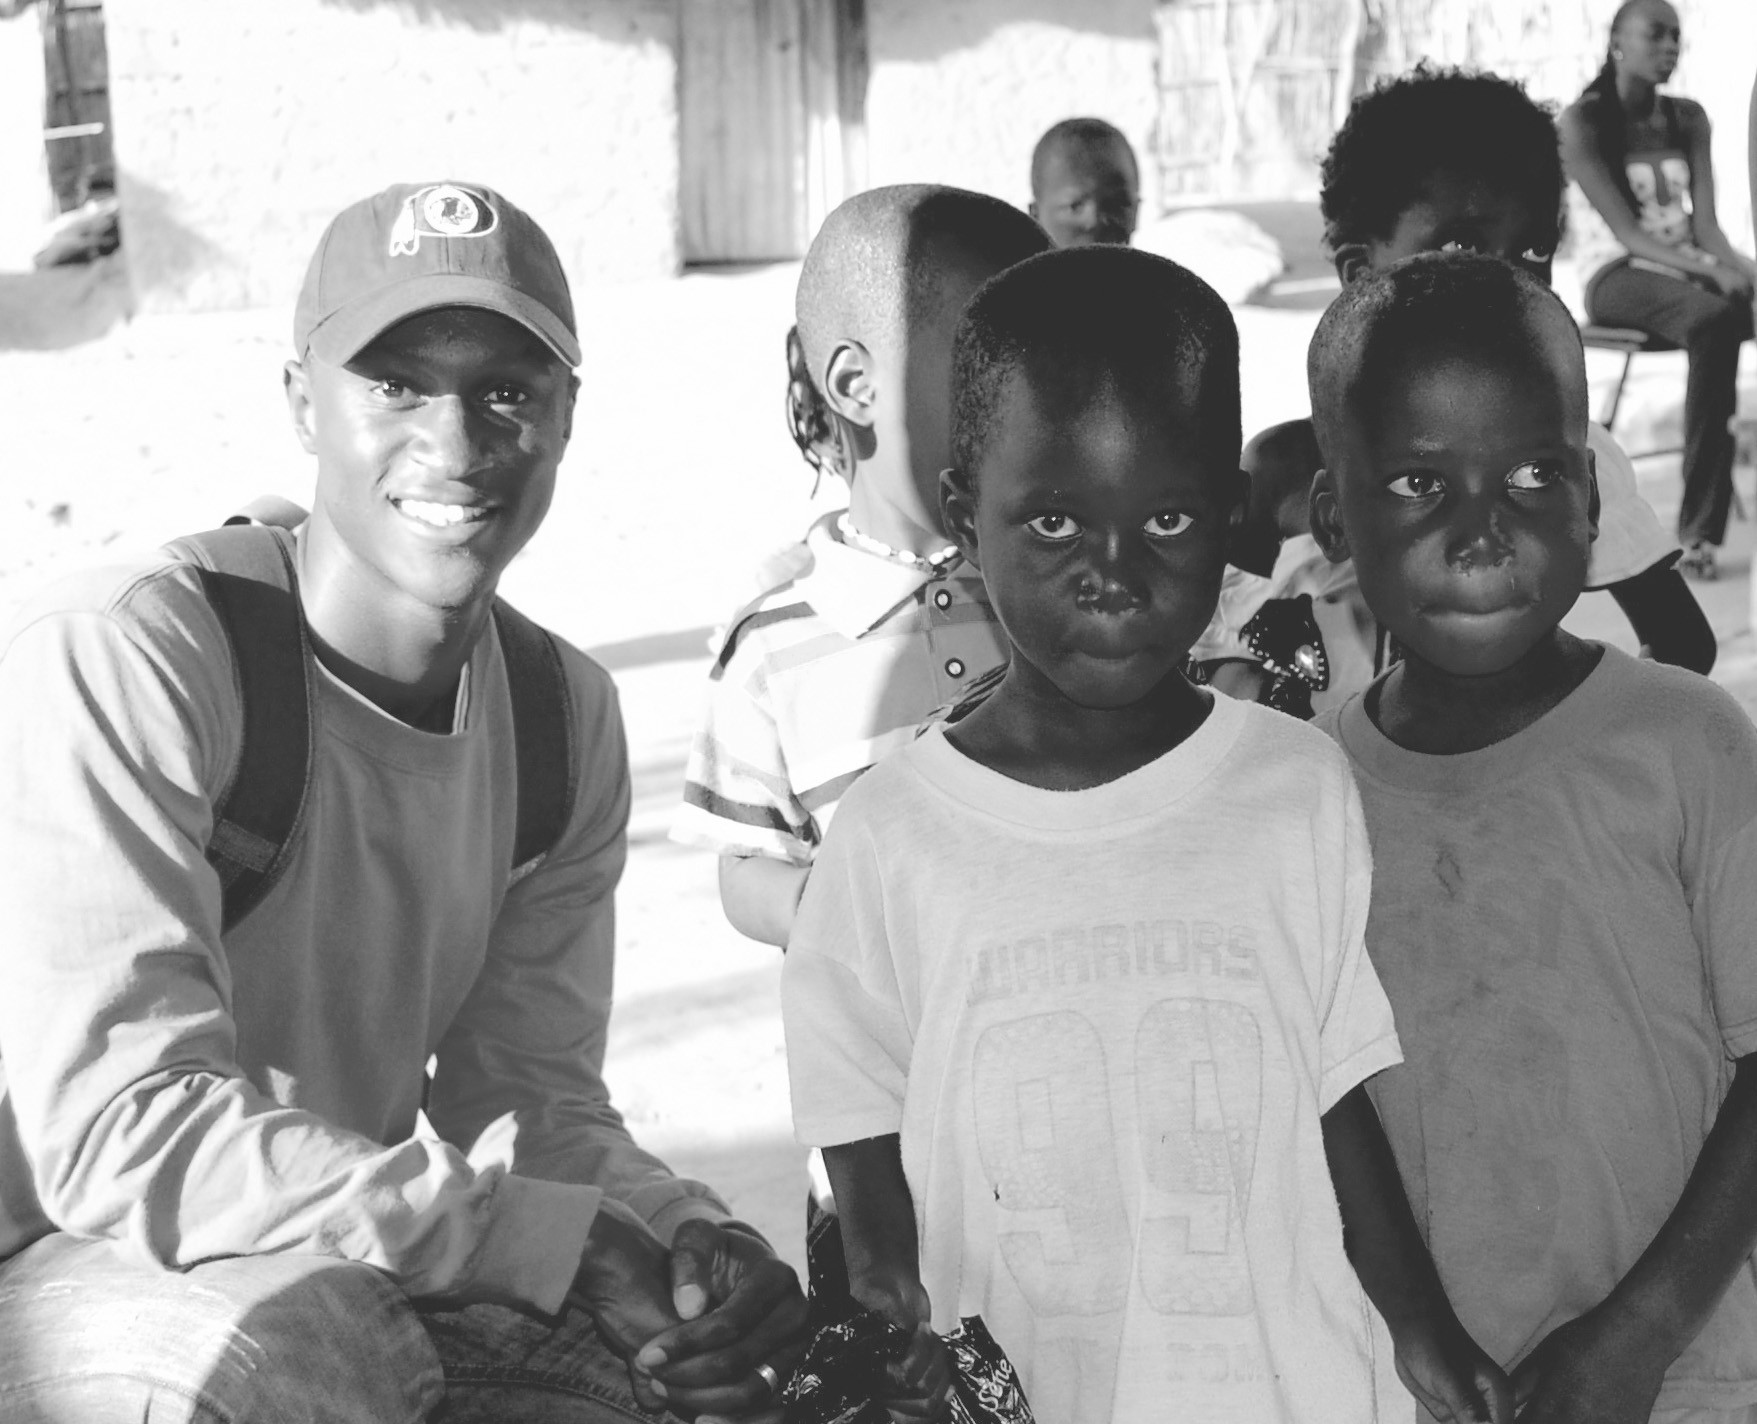 Edouard Ndecky, pictured with children from a small village in Senegal, Africa, has been spending time in Alabama with his wife, Anna Goode, an Oneonta native.